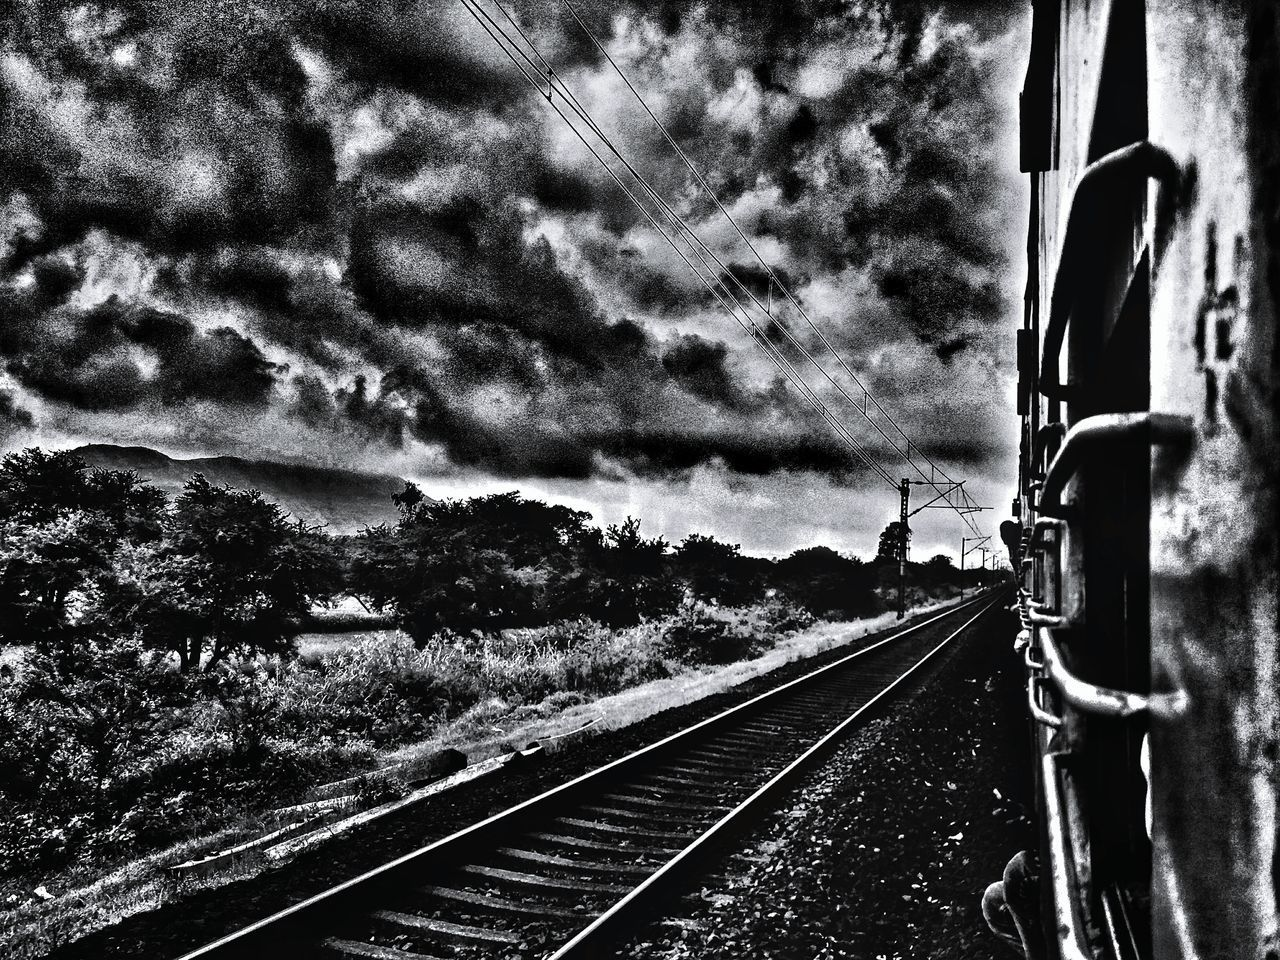 Railroad Track Transportation Rail Transportation Sky The Way Forward No People Mode Of Transport Public Transportation Outdoors Day Nature Tree EyeEm Black&white! Travel Destinations Edit India Oneplus2 EyeEm Gallery Mobilephotography Windows Train Journey Window View Abstract Photography Abstract Surreal